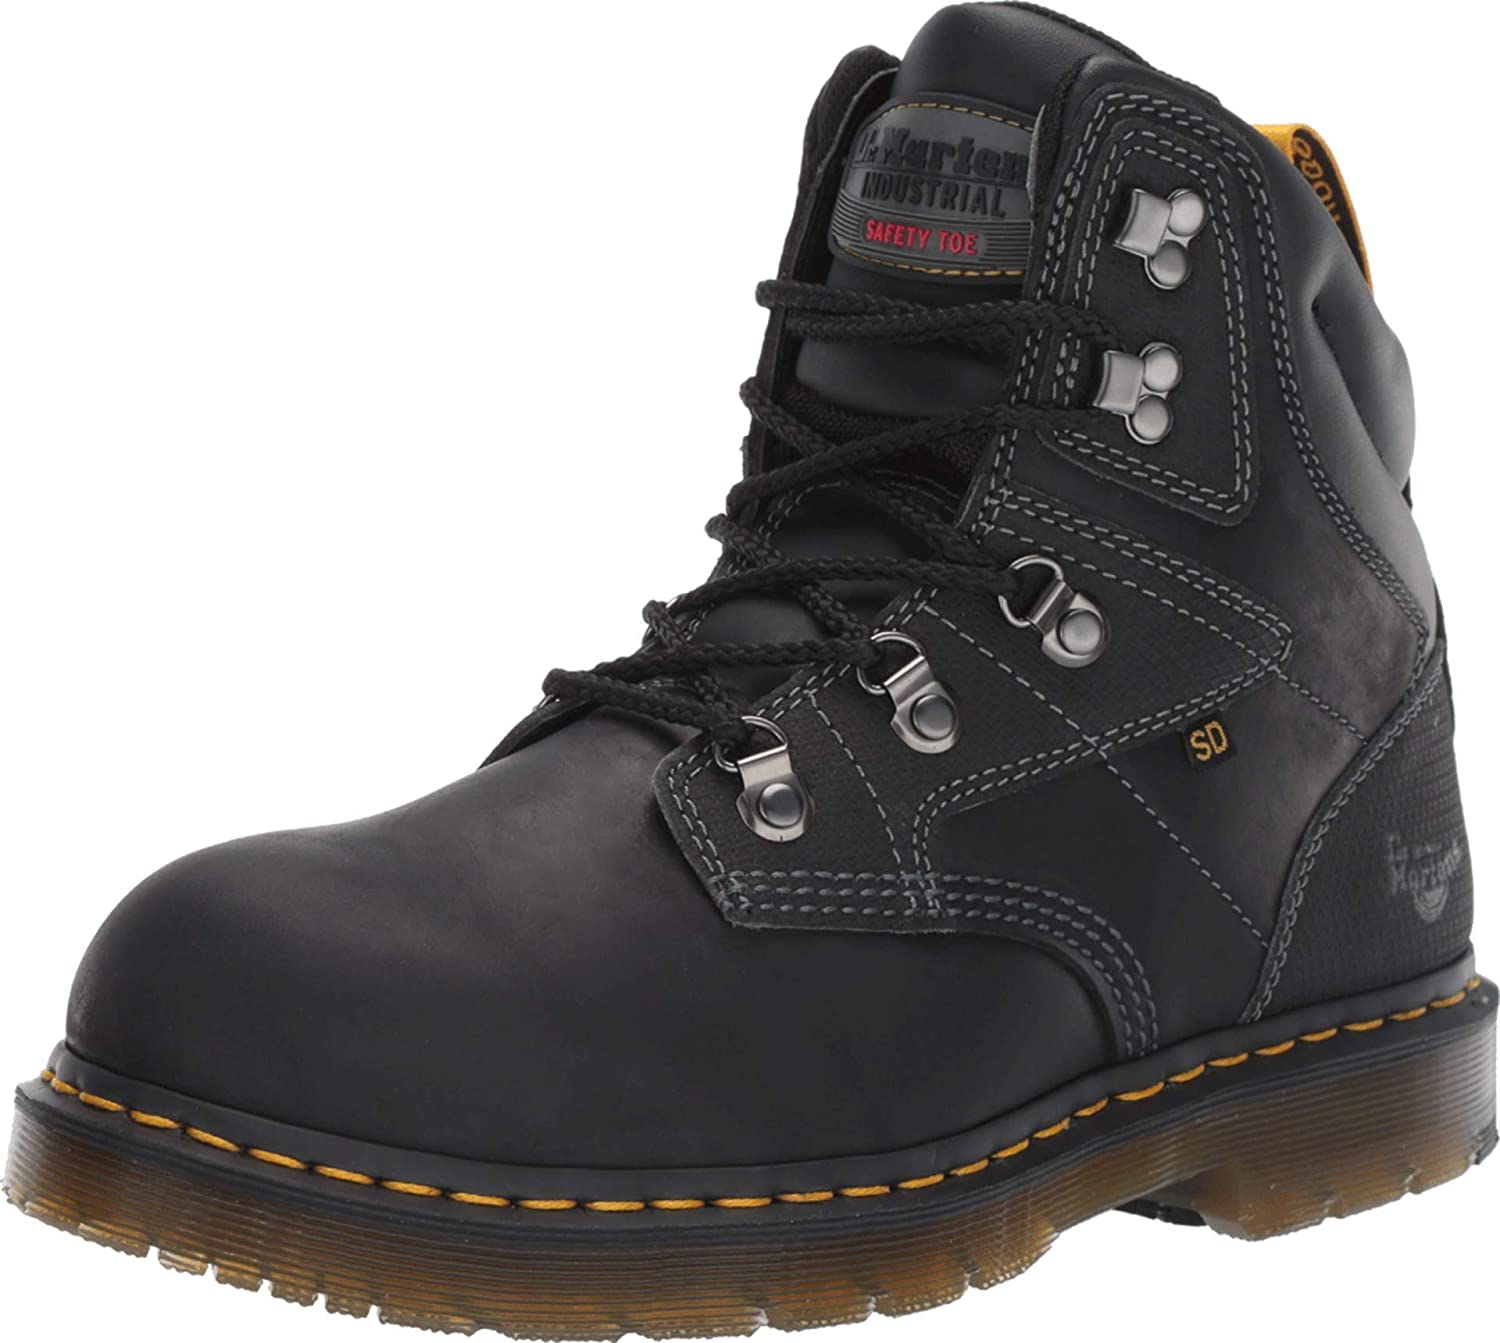 Dr. Martens Unisex Earlstoke Steel Free shipping on posting reviews Light Bl Genuine Boots Industry Toe